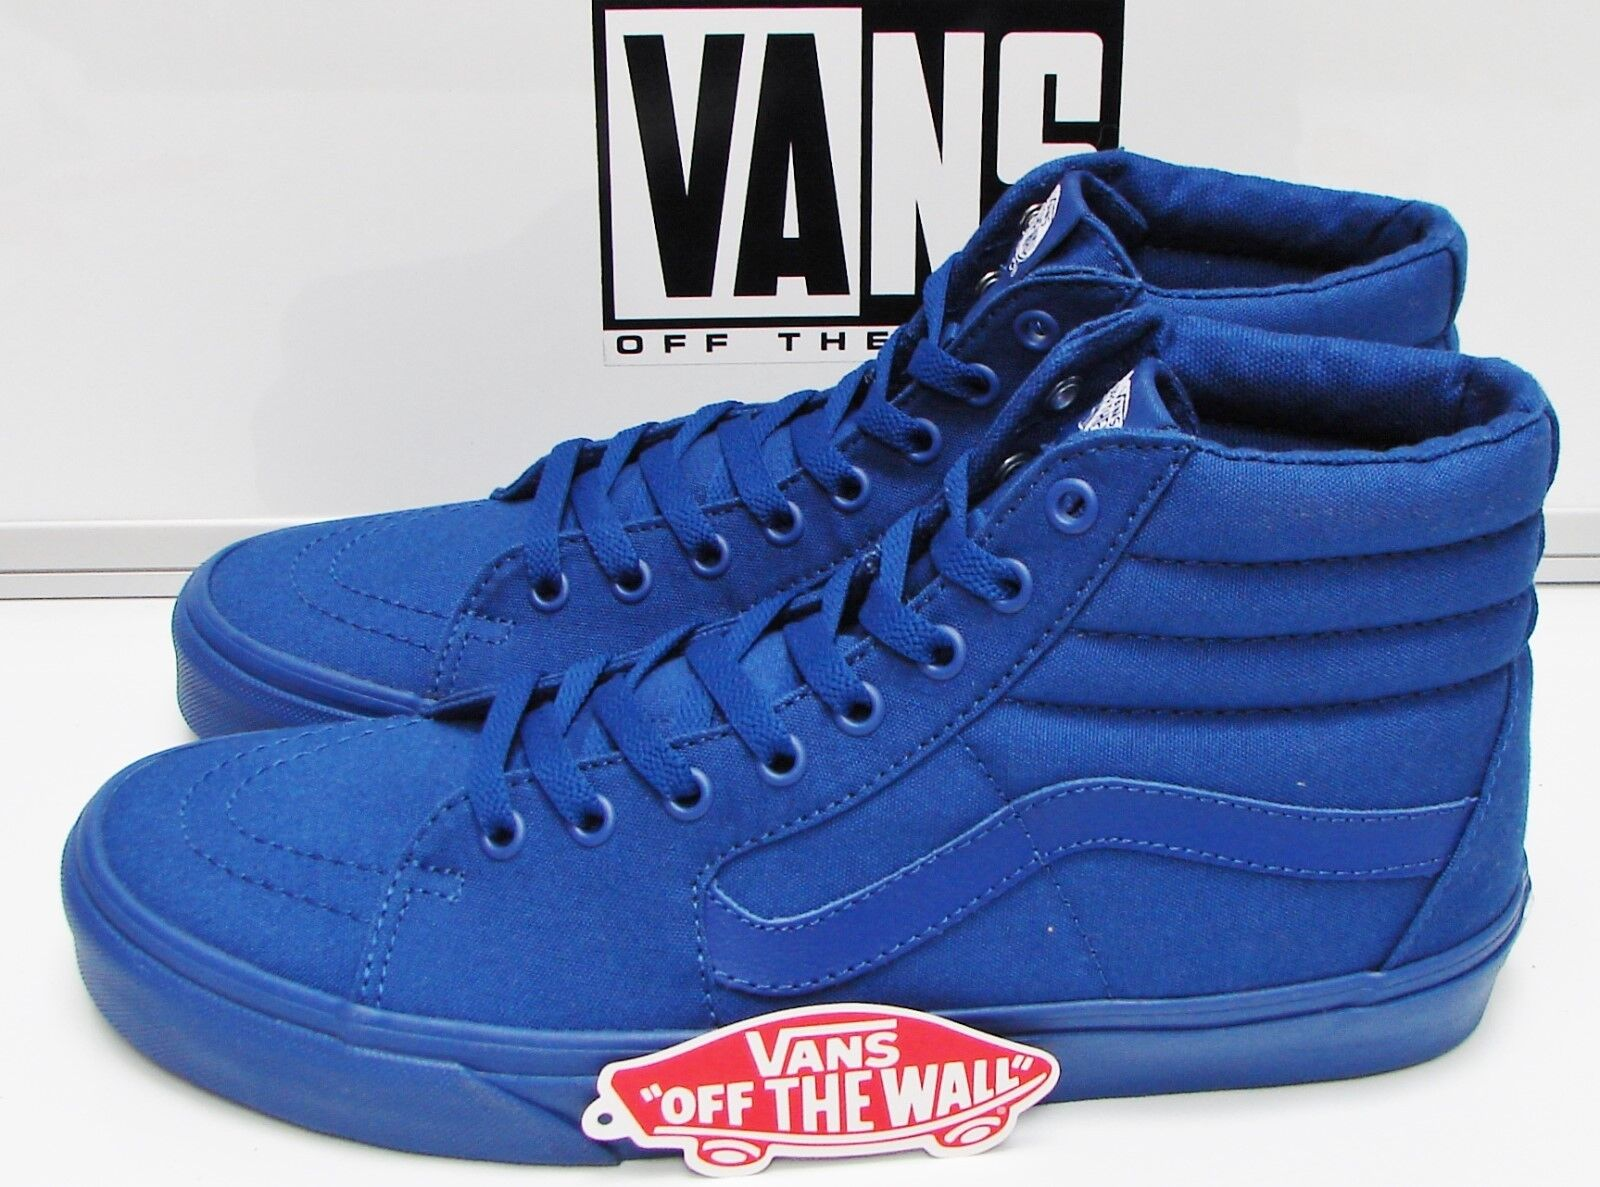 Vans Sk8-HI (Mono Canvas) True bluee VN-000TS9JJM Men's Size  11